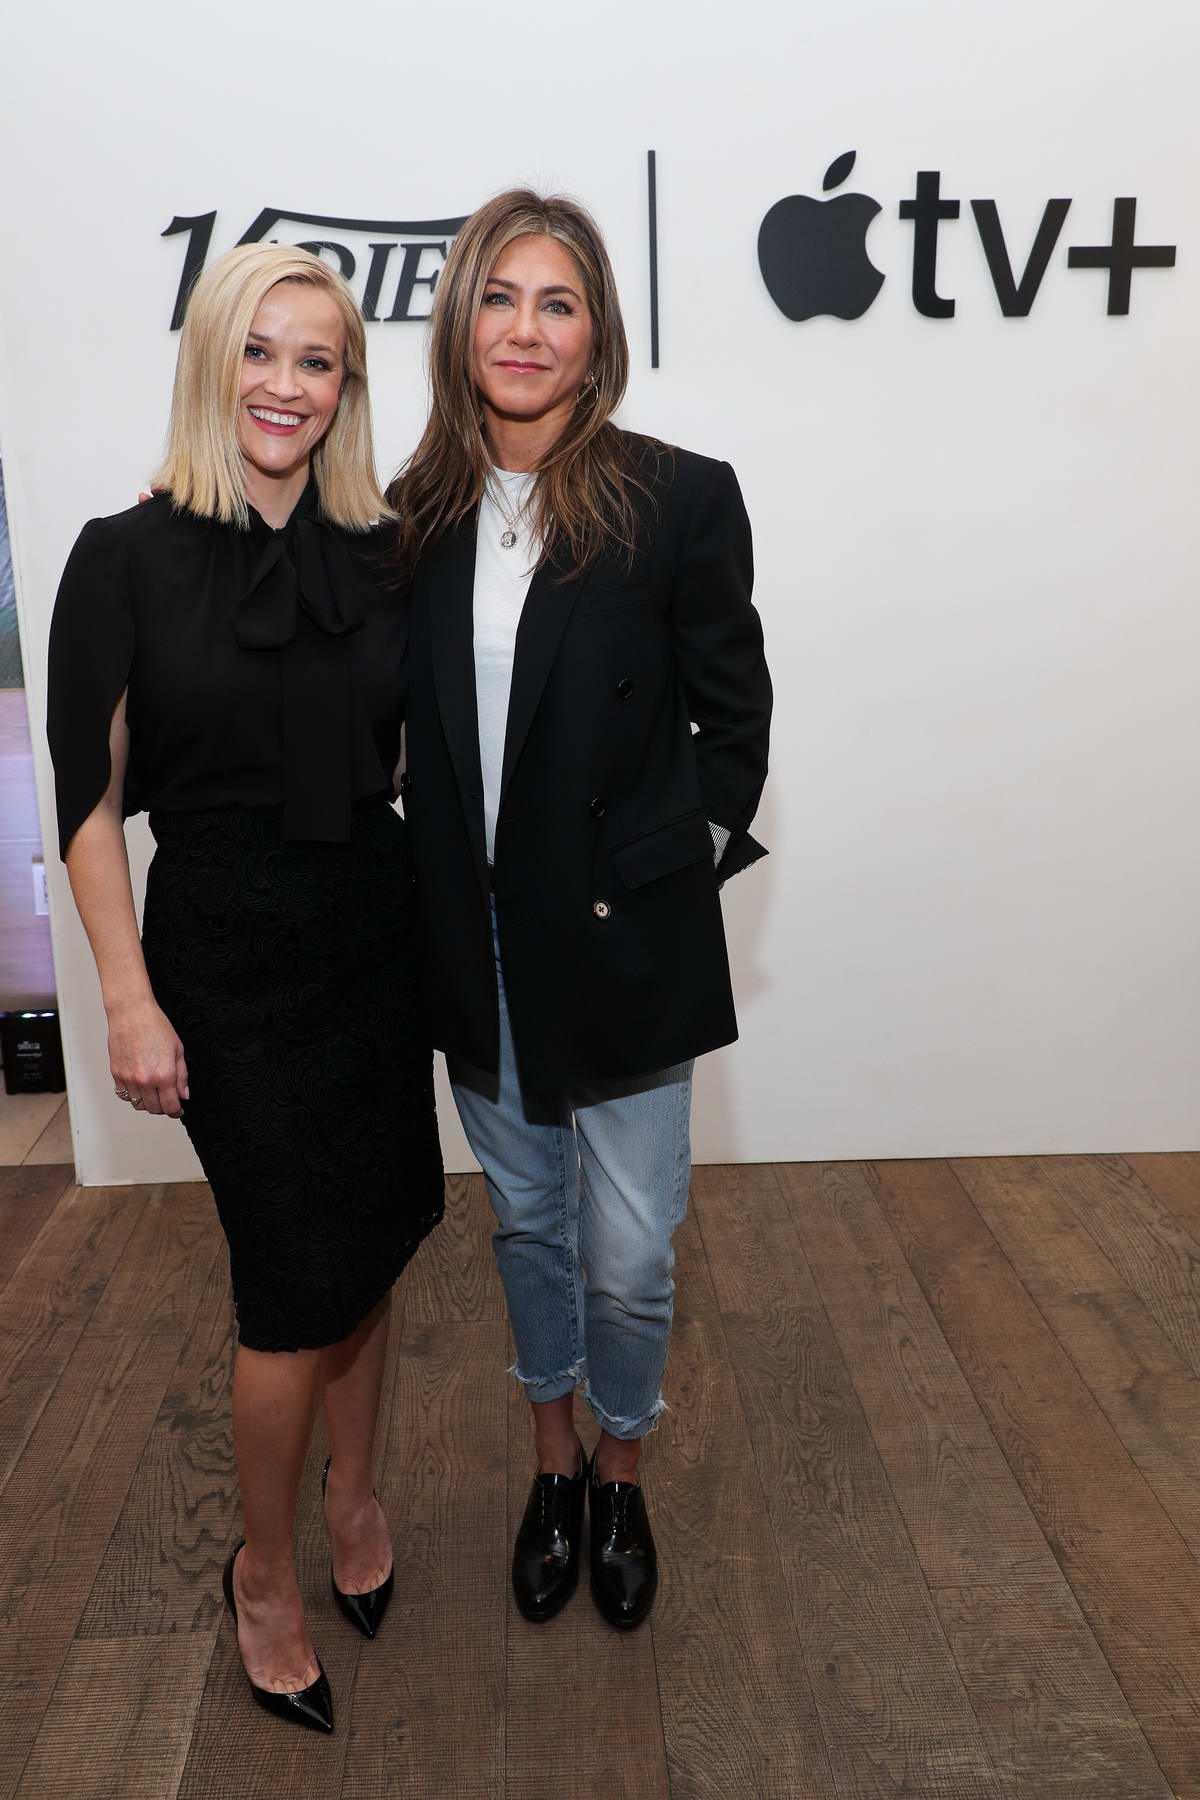 Jennifer Aniston and Reese Witherspoon attend Variety x Apple TV+ Collaborations Event in Los Angeles